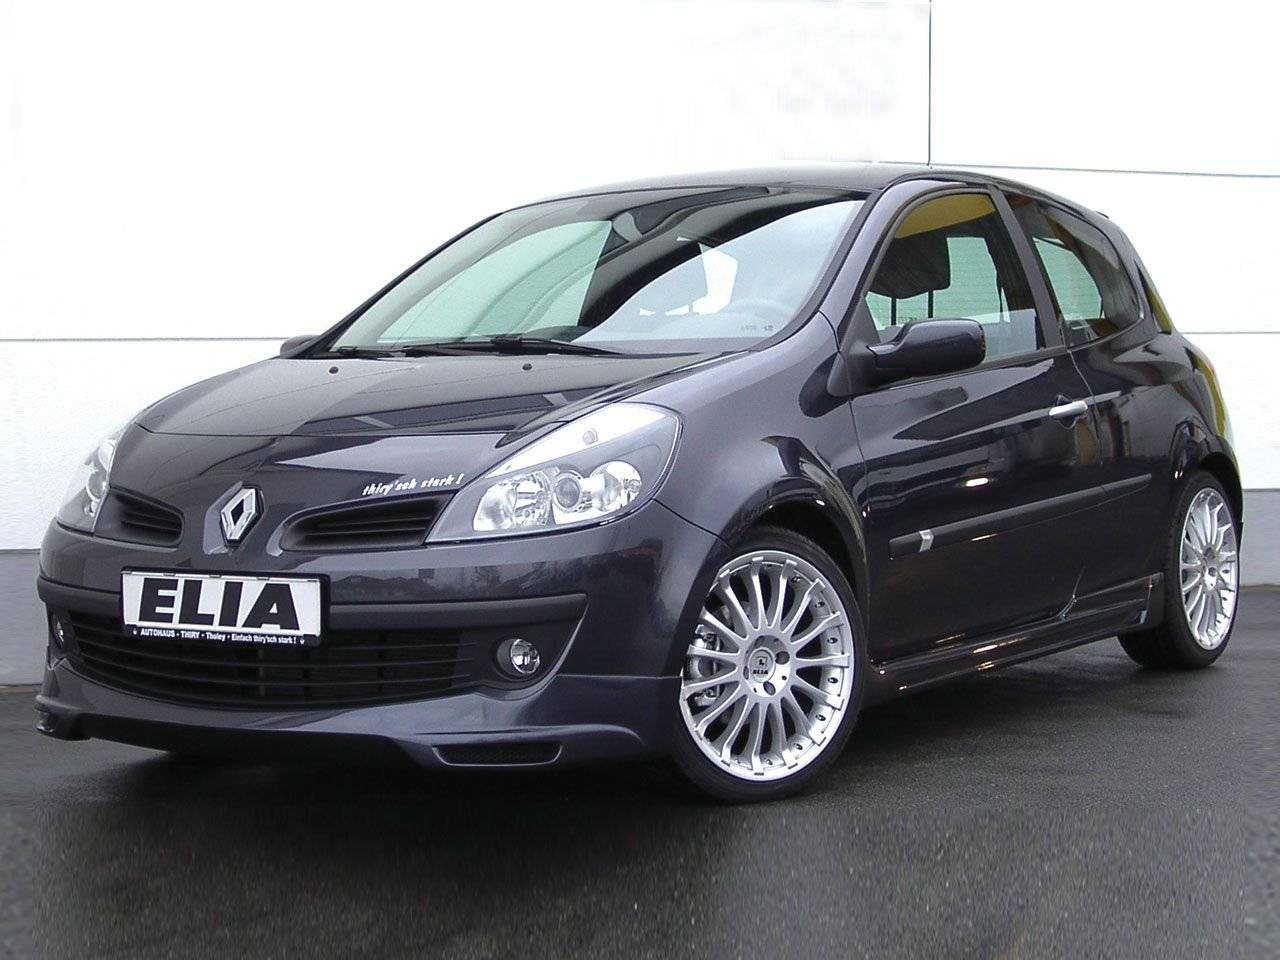 elia bodykit voor de renault clio iii tuning styling. Black Bedroom Furniture Sets. Home Design Ideas